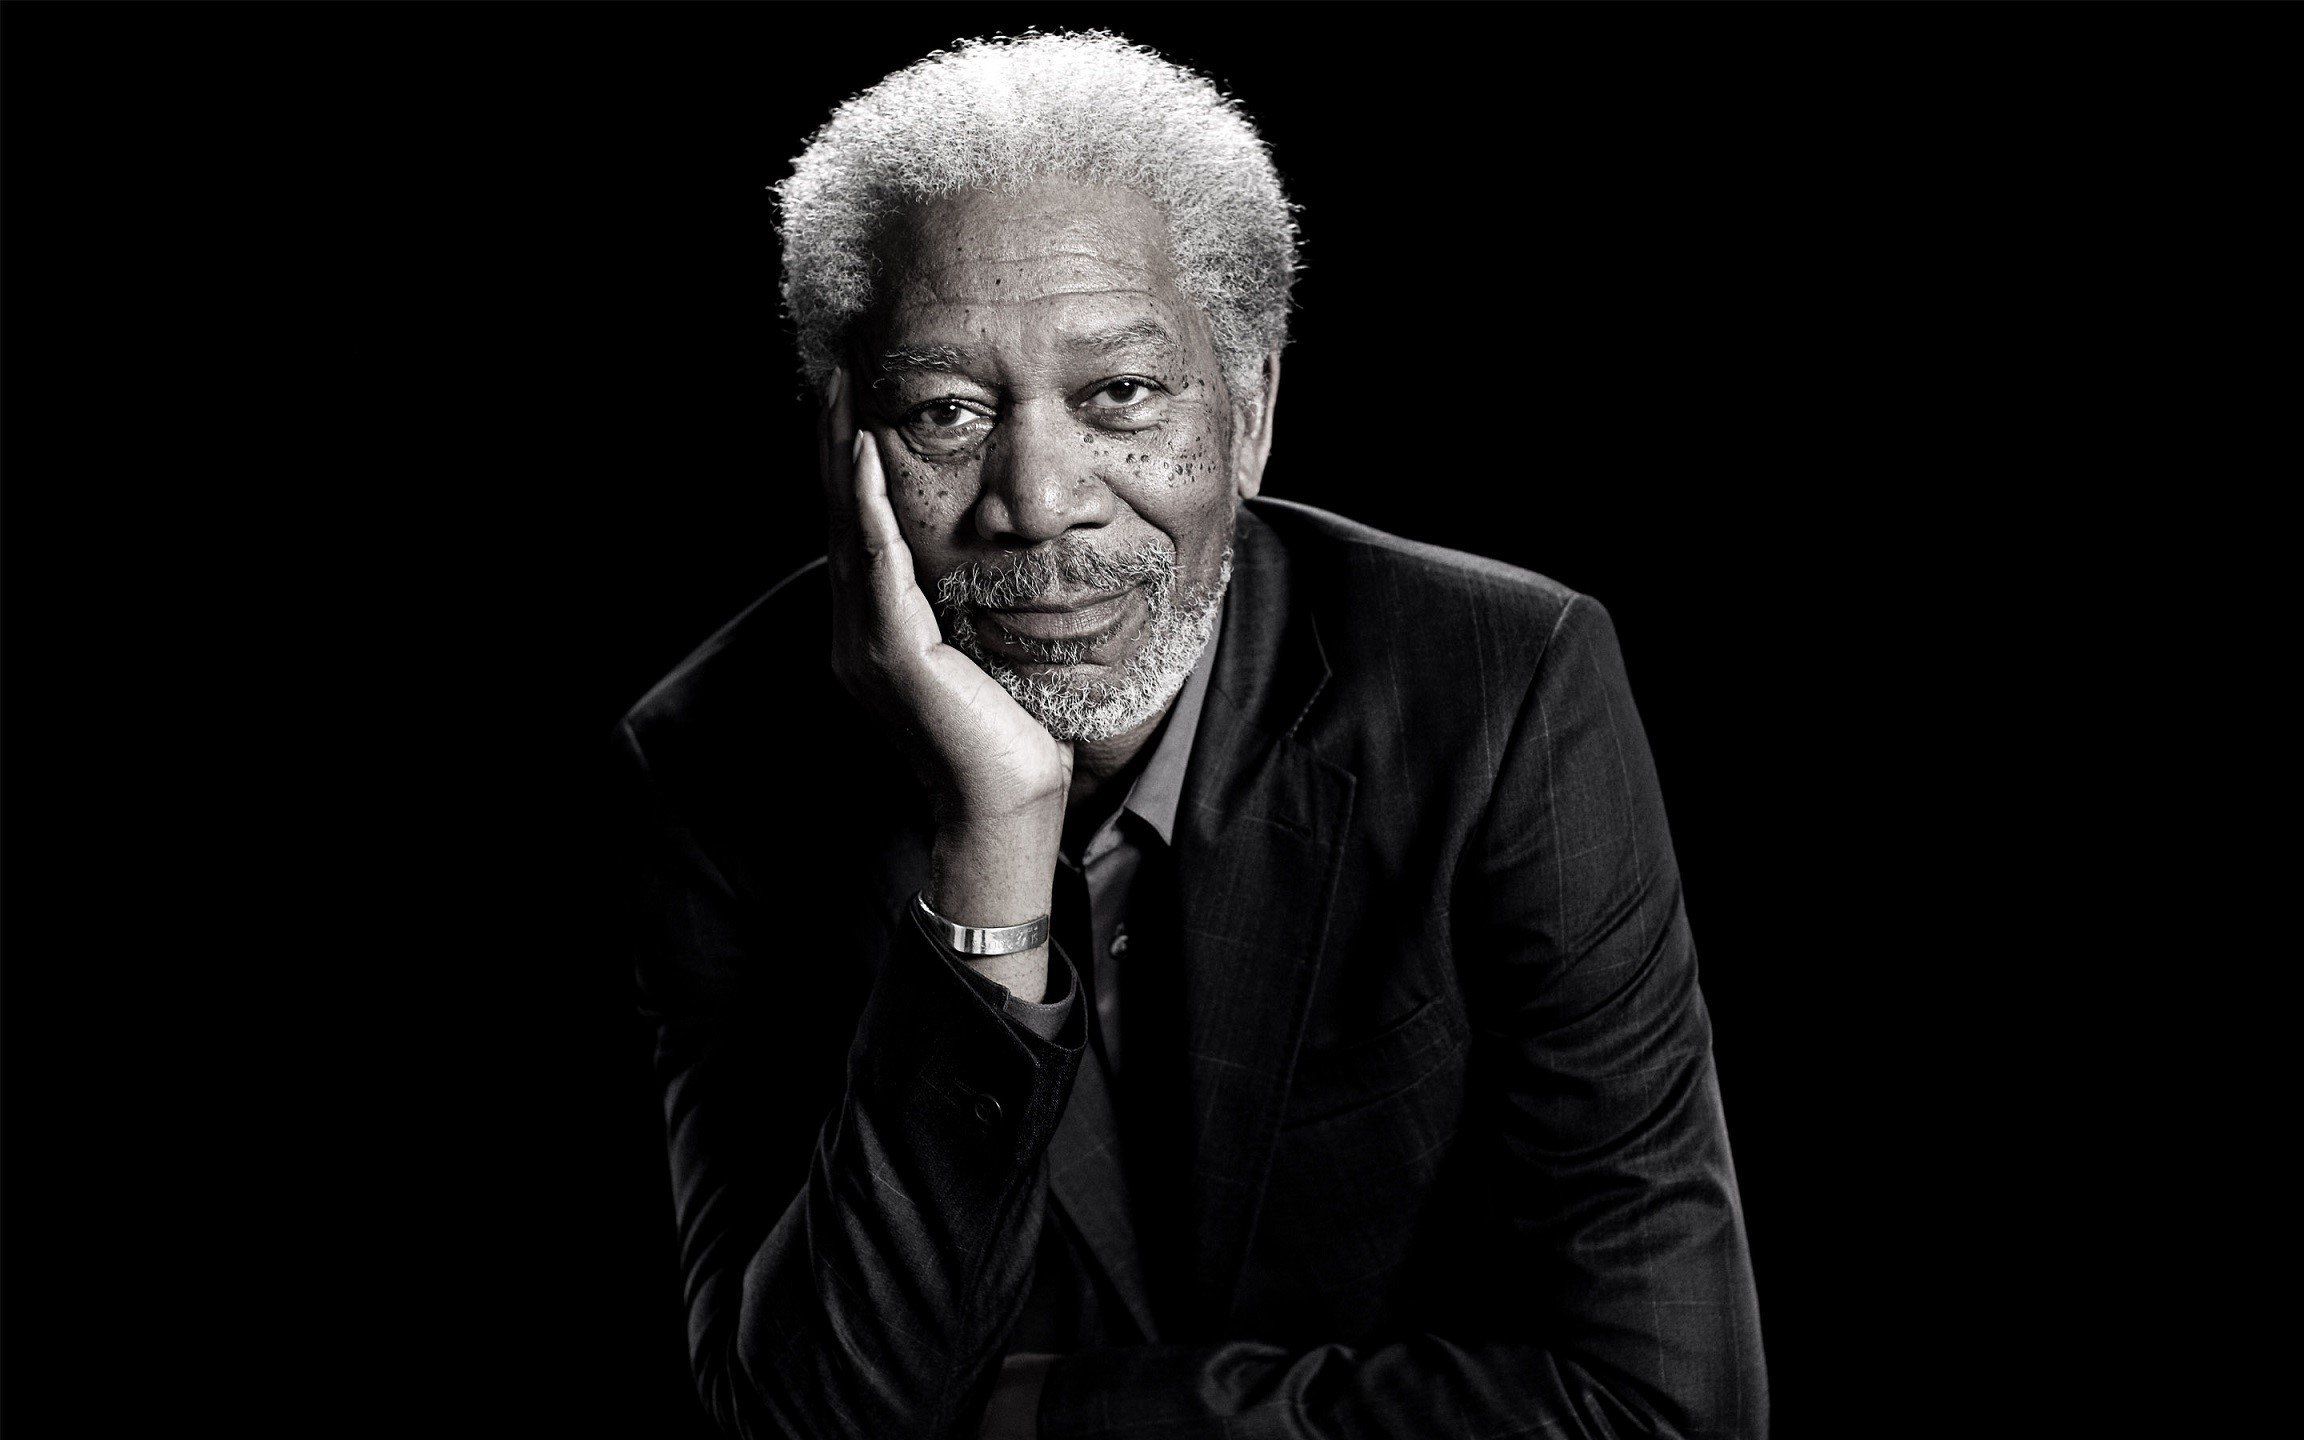 Morgan Freeman Pics